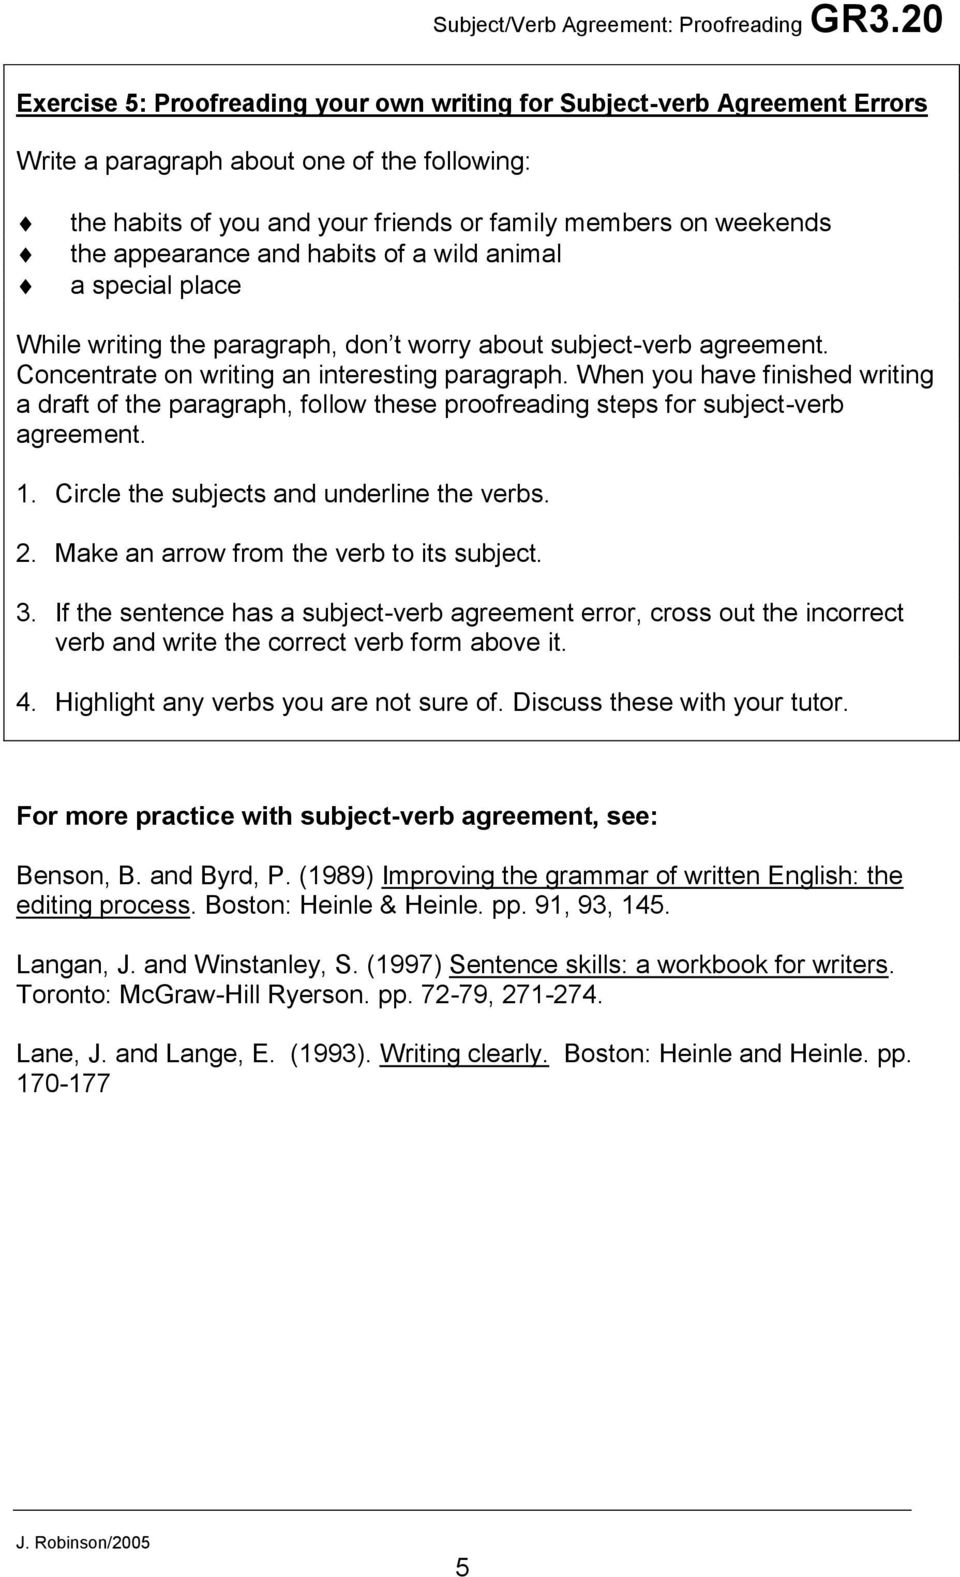 Subjectverb Agreement Proofreading For Subject Verb Agreement Pdf